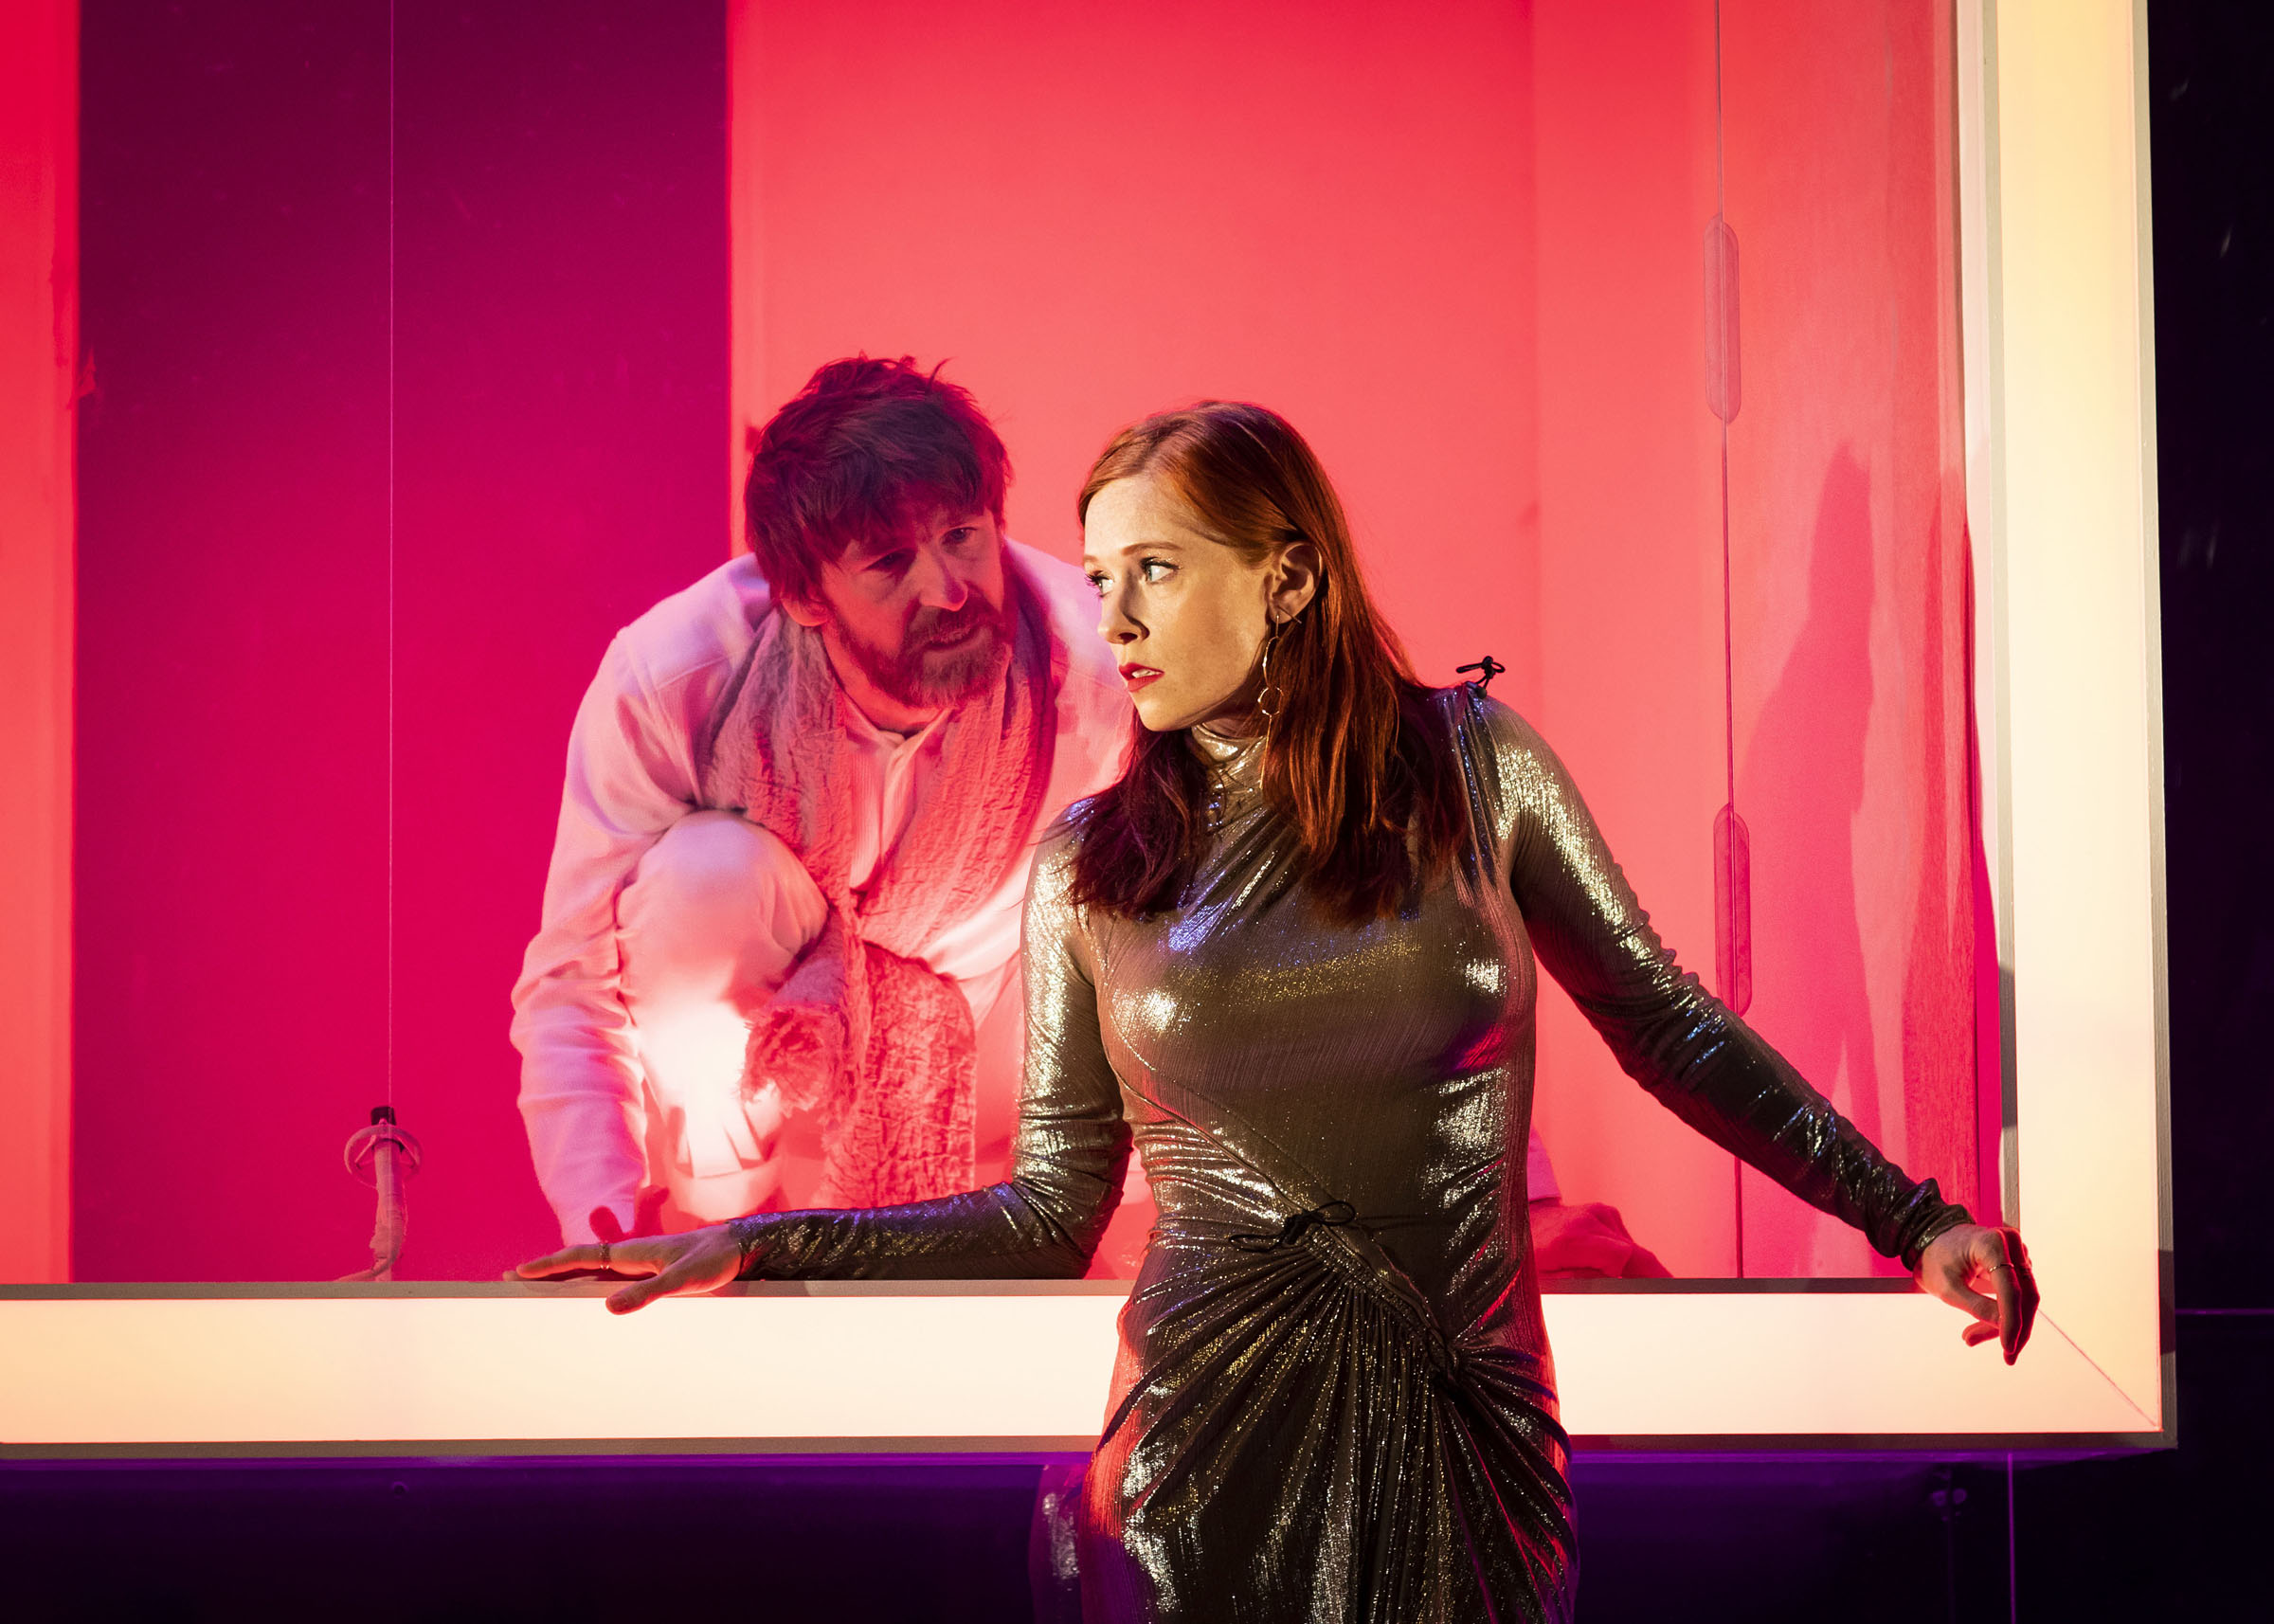 Audrey Fleurot and Paul Anderson in Tartuffe at Theatre Royal Haymarket